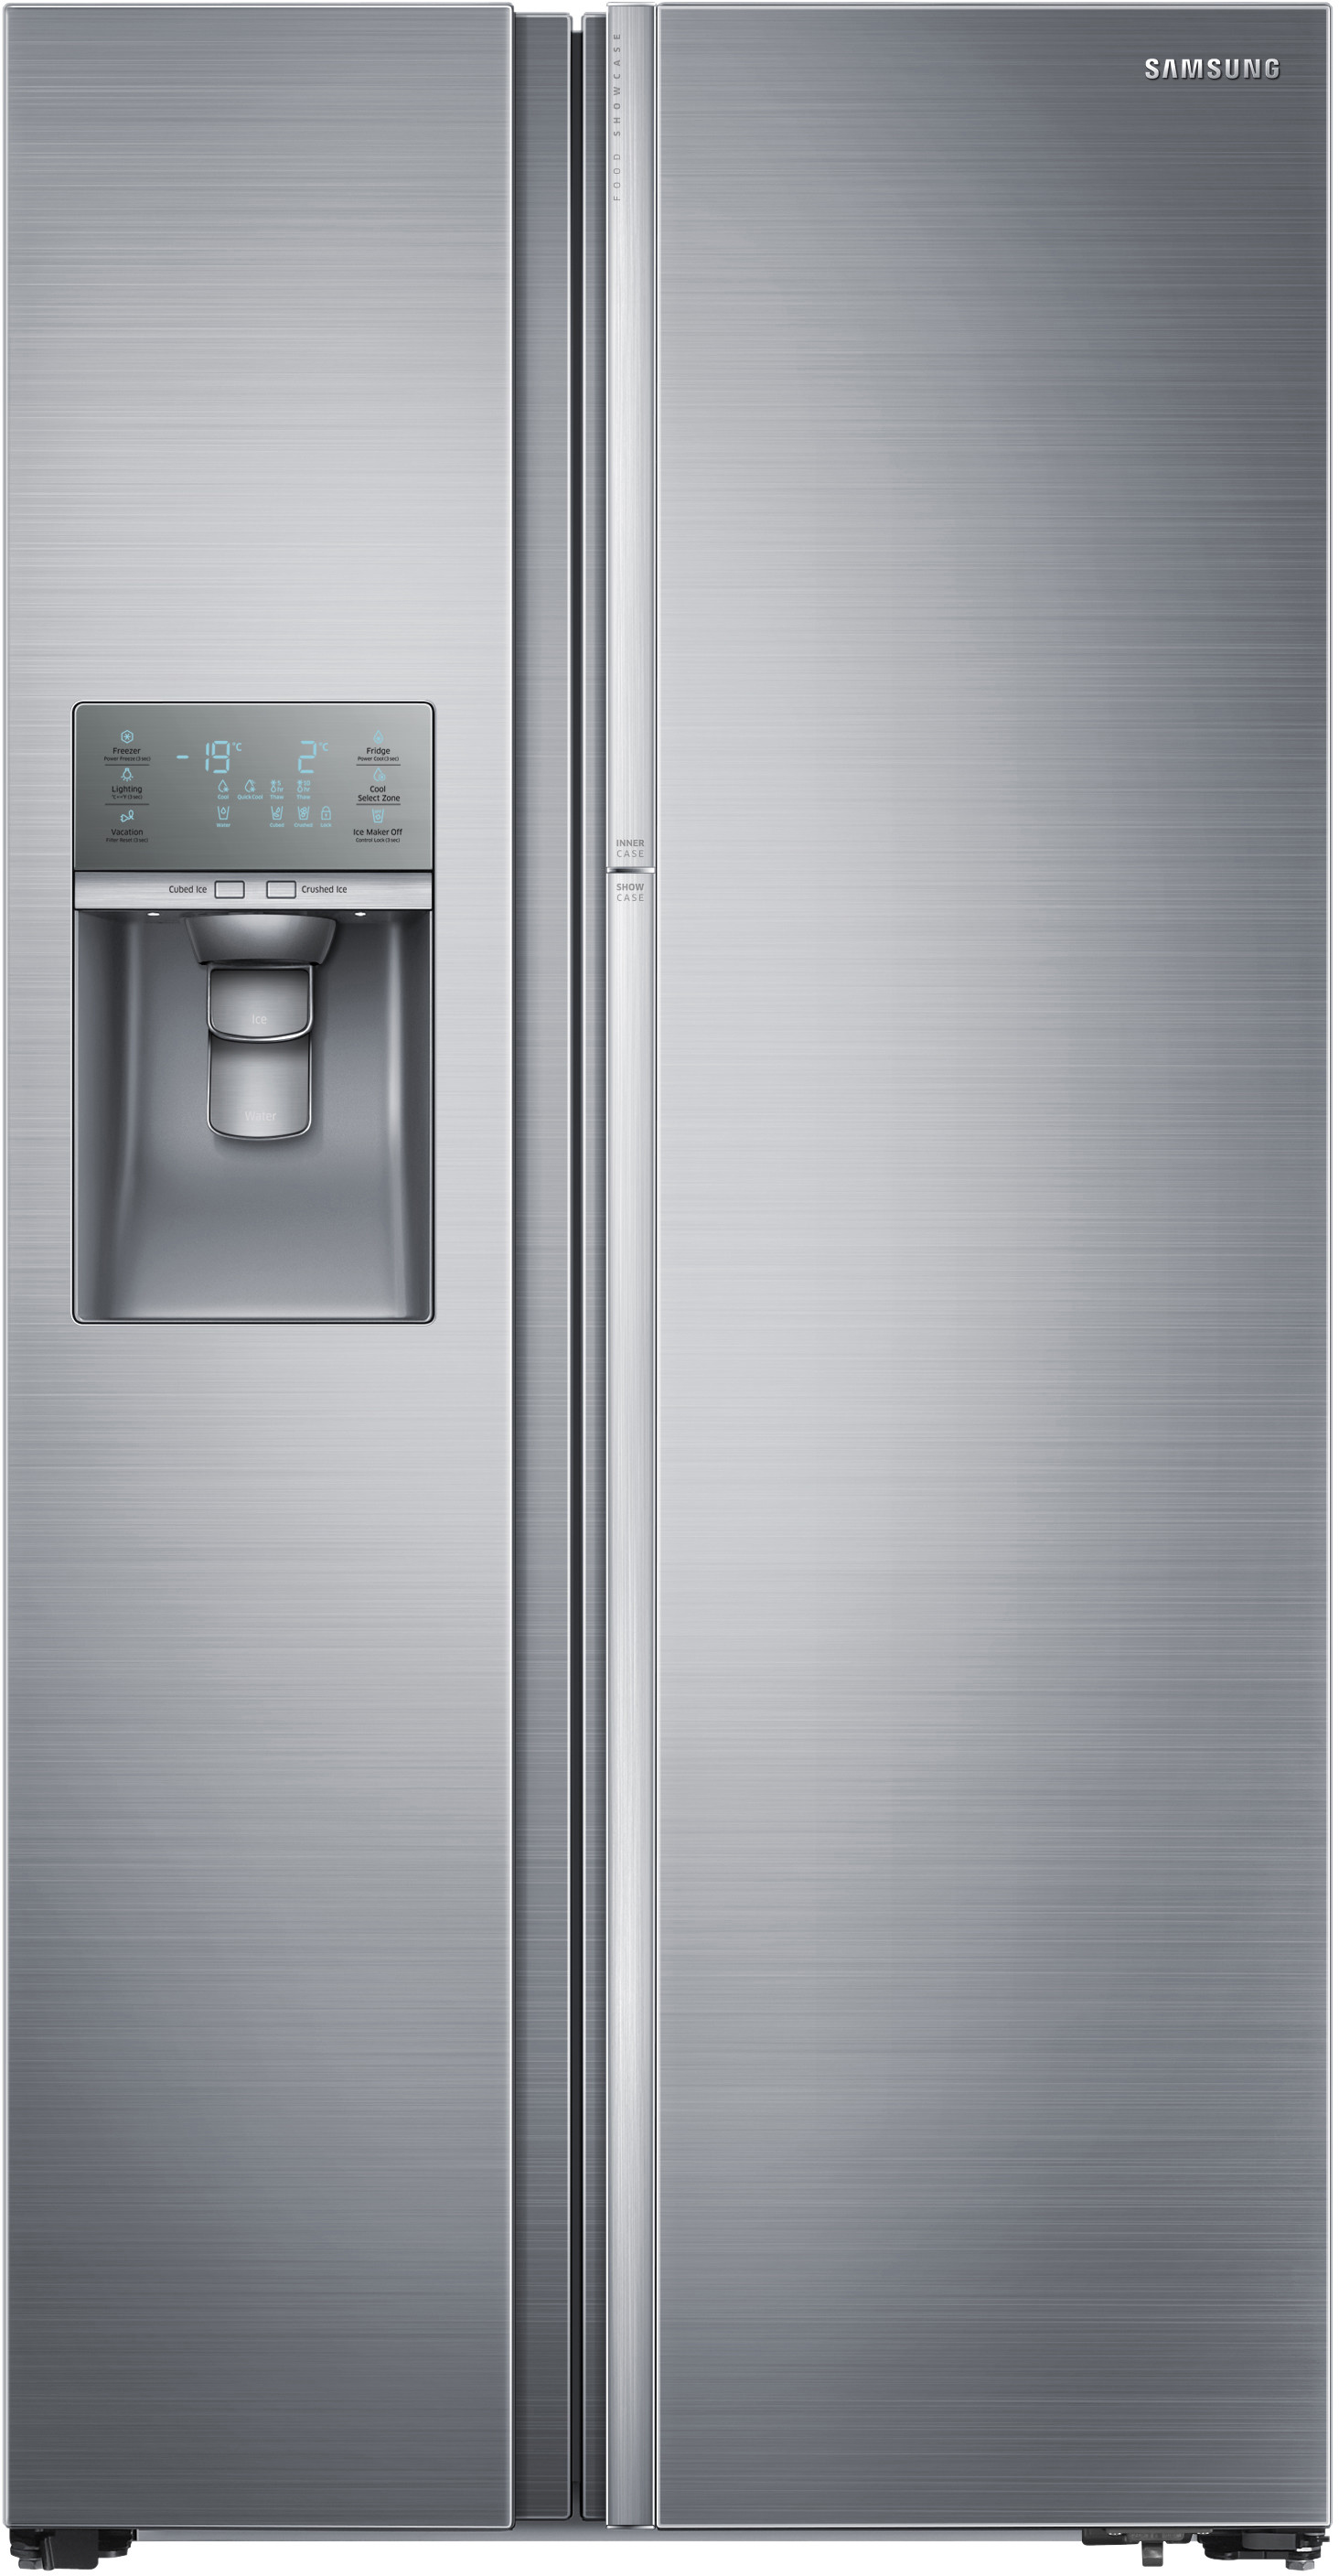 Samsung Countertop Ice Maker : Samsung RH29H9000SR 36 Inch Side by Side Refrigerator with 28.5 cu. ft ...